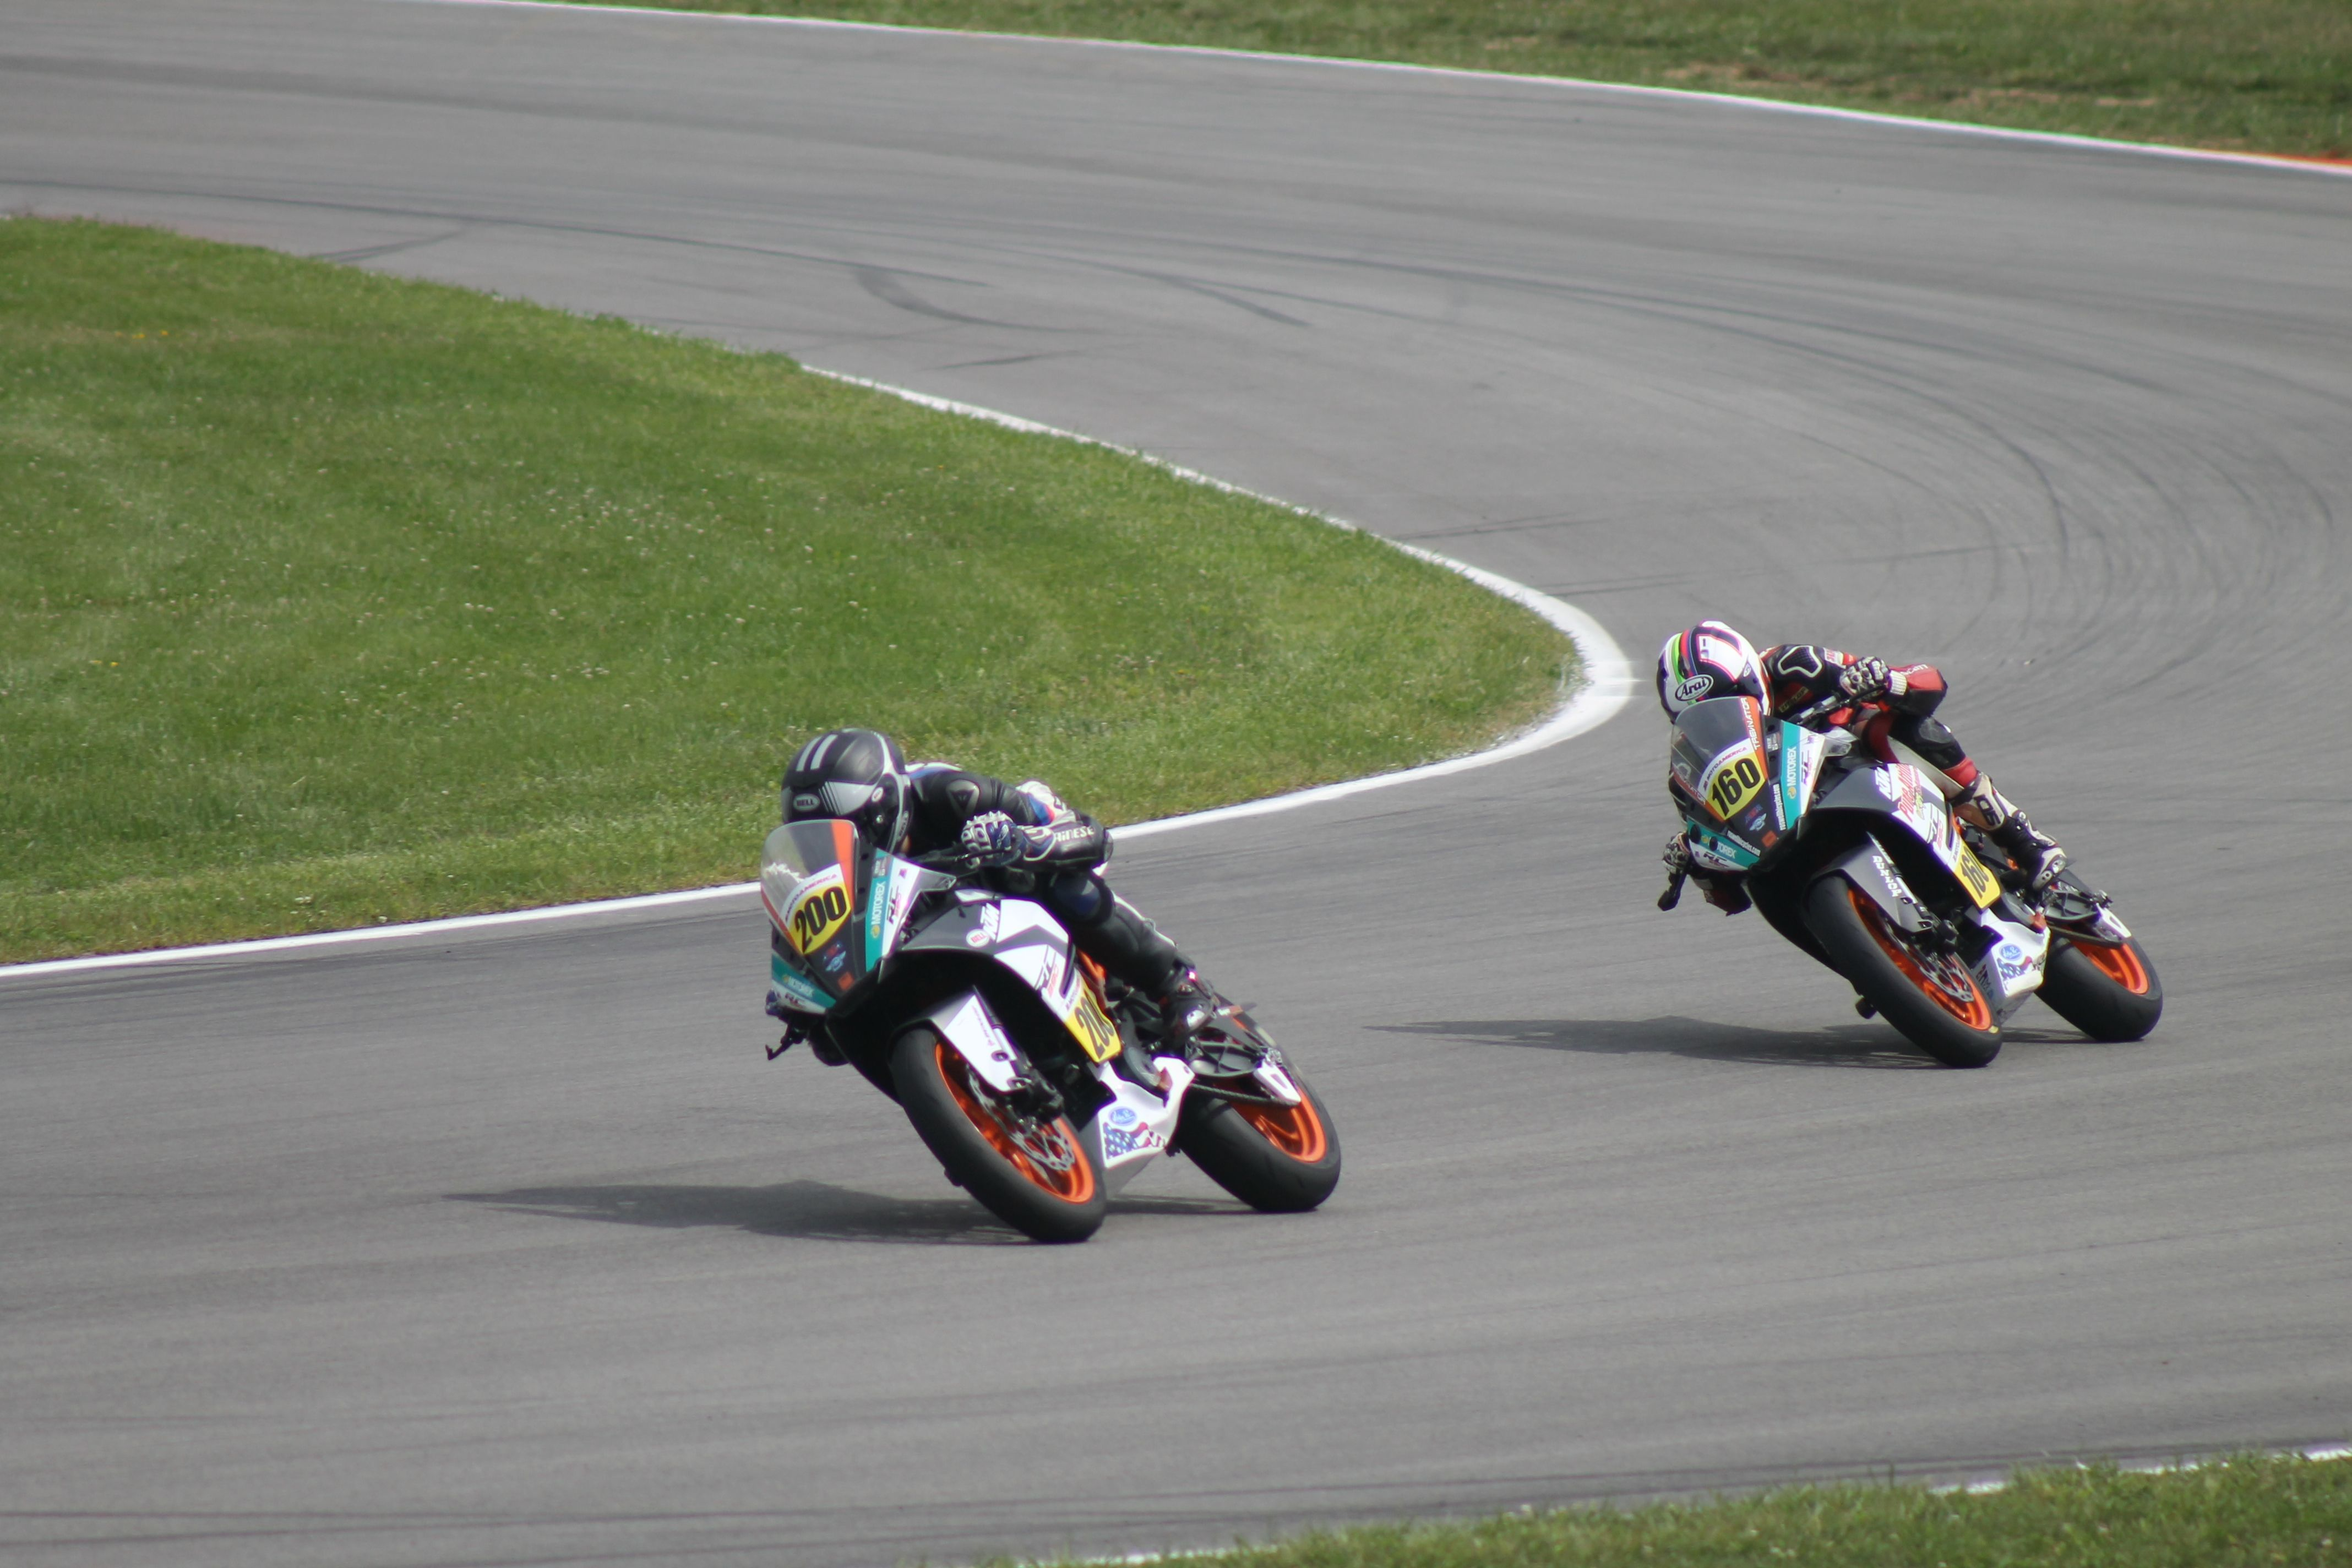 We Ve Got Even More Bikes After Motoamerica N2 Track Days Will Be Back August 15 16 Track Event Event Calendar Day